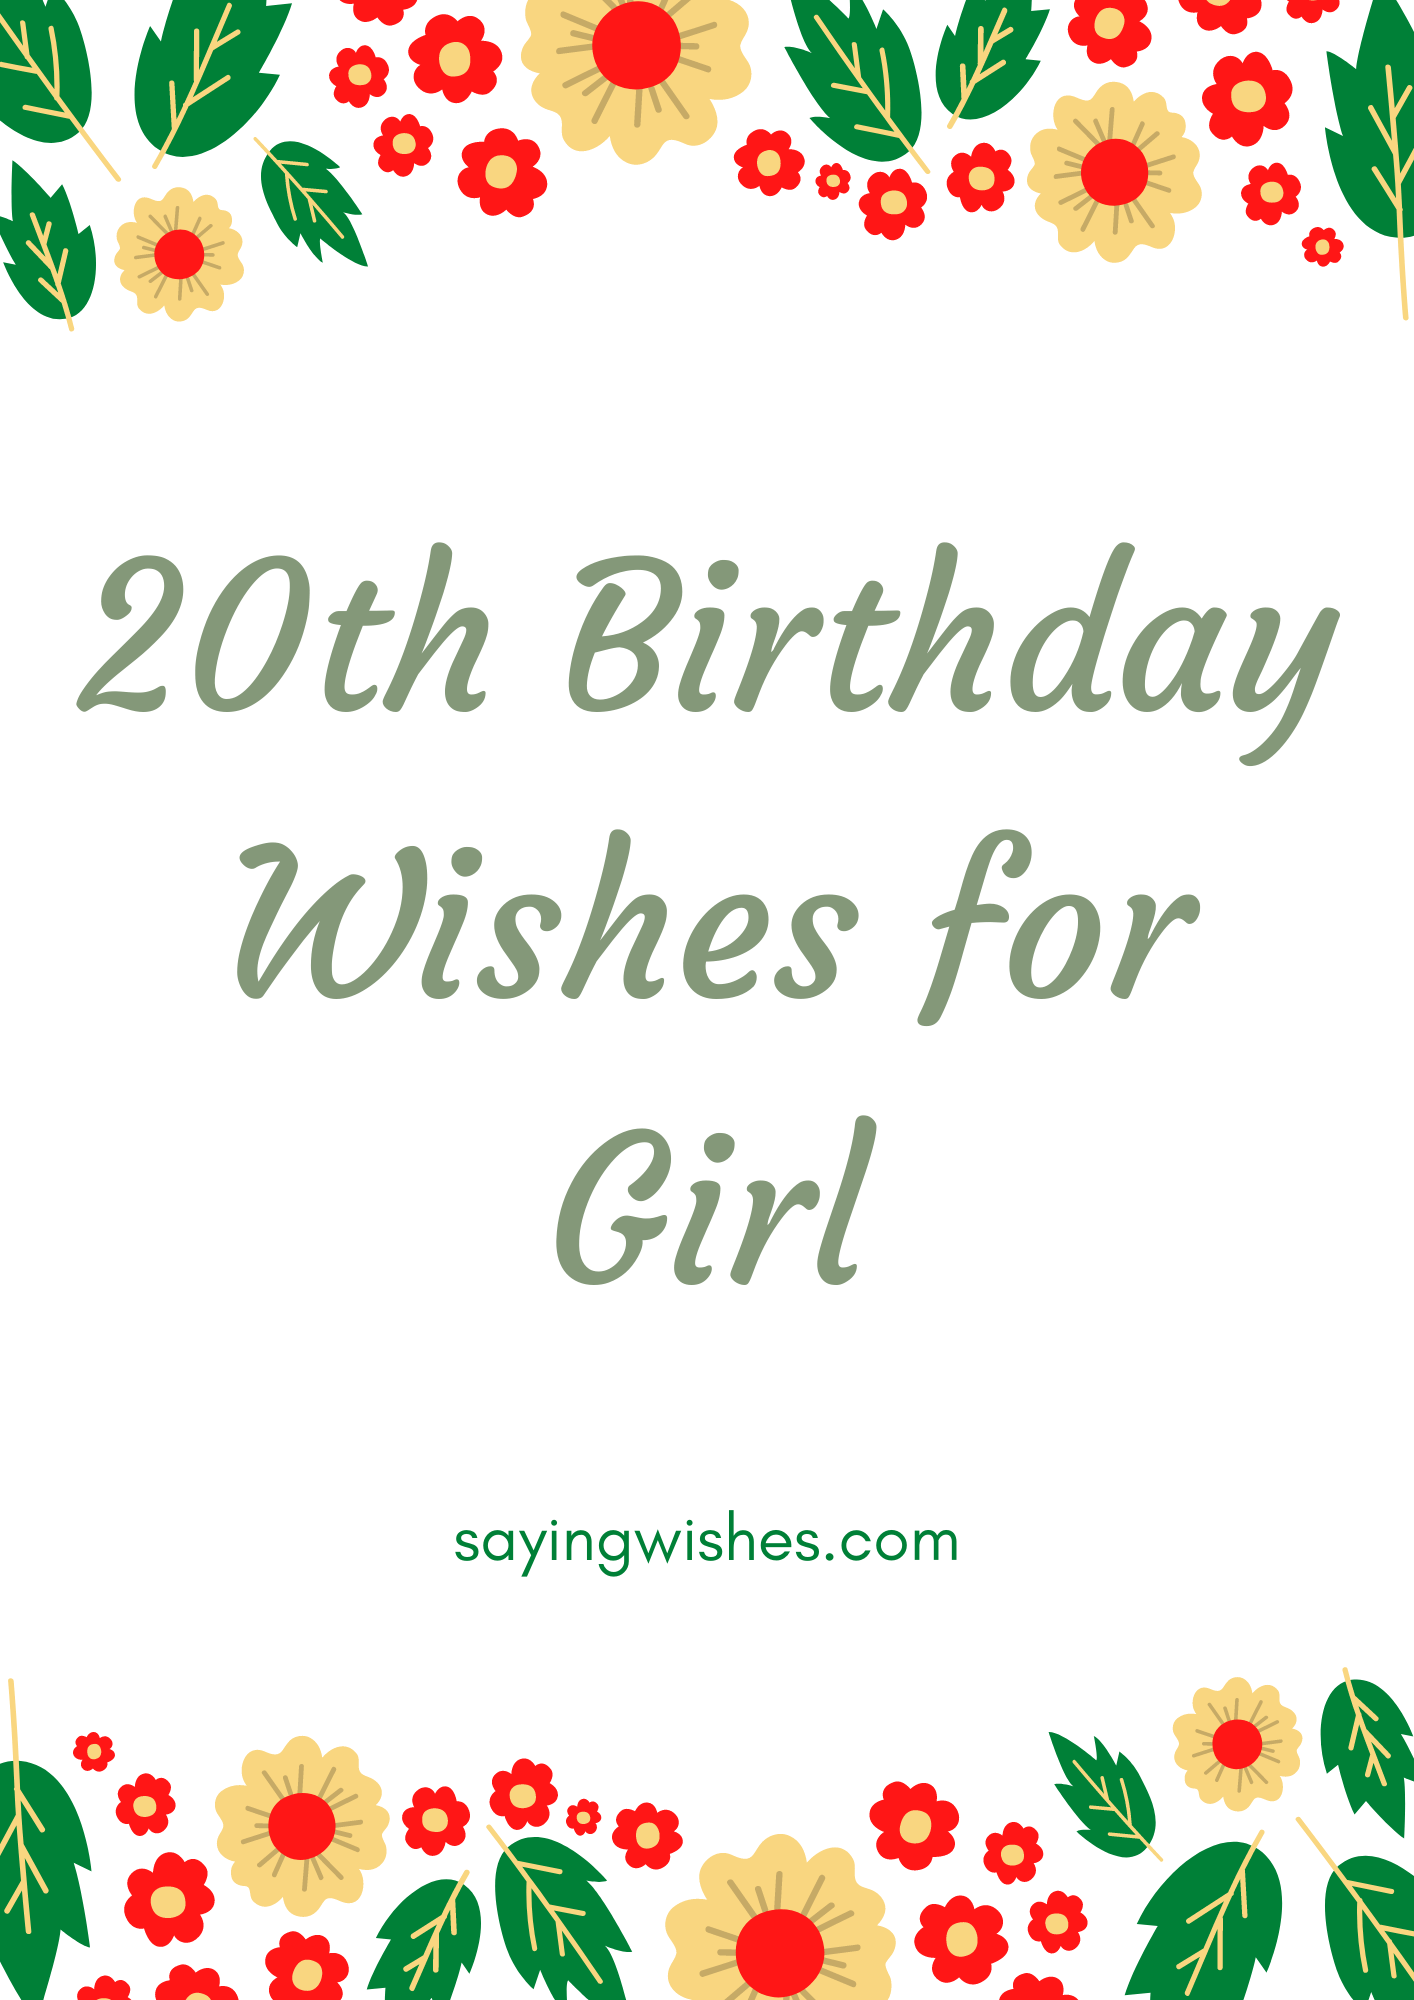 20th birthday wishes for girl